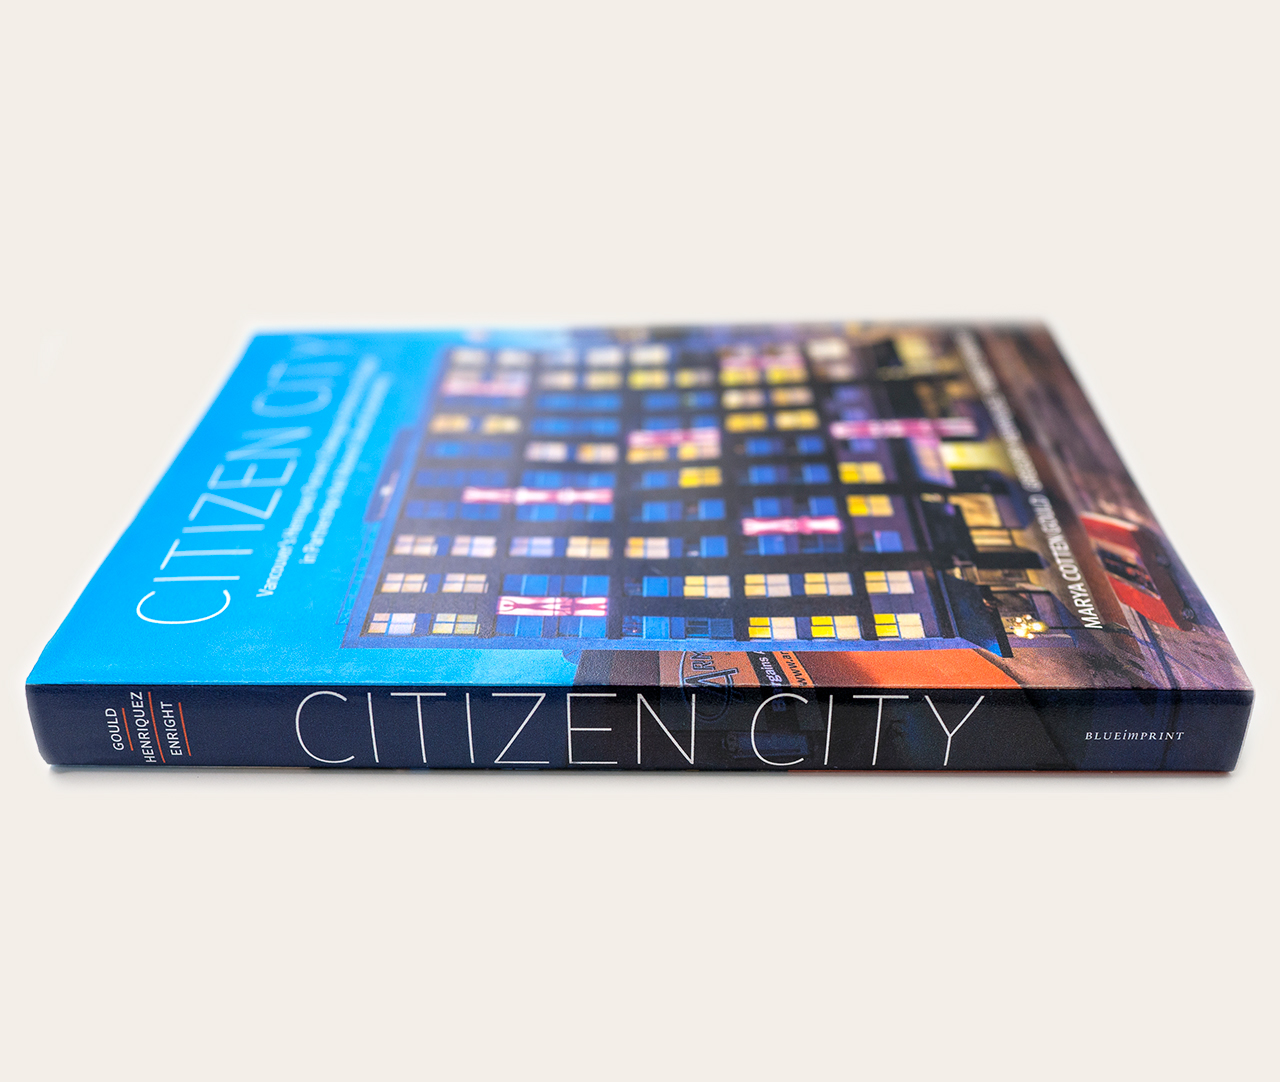 Citizen City book cover.